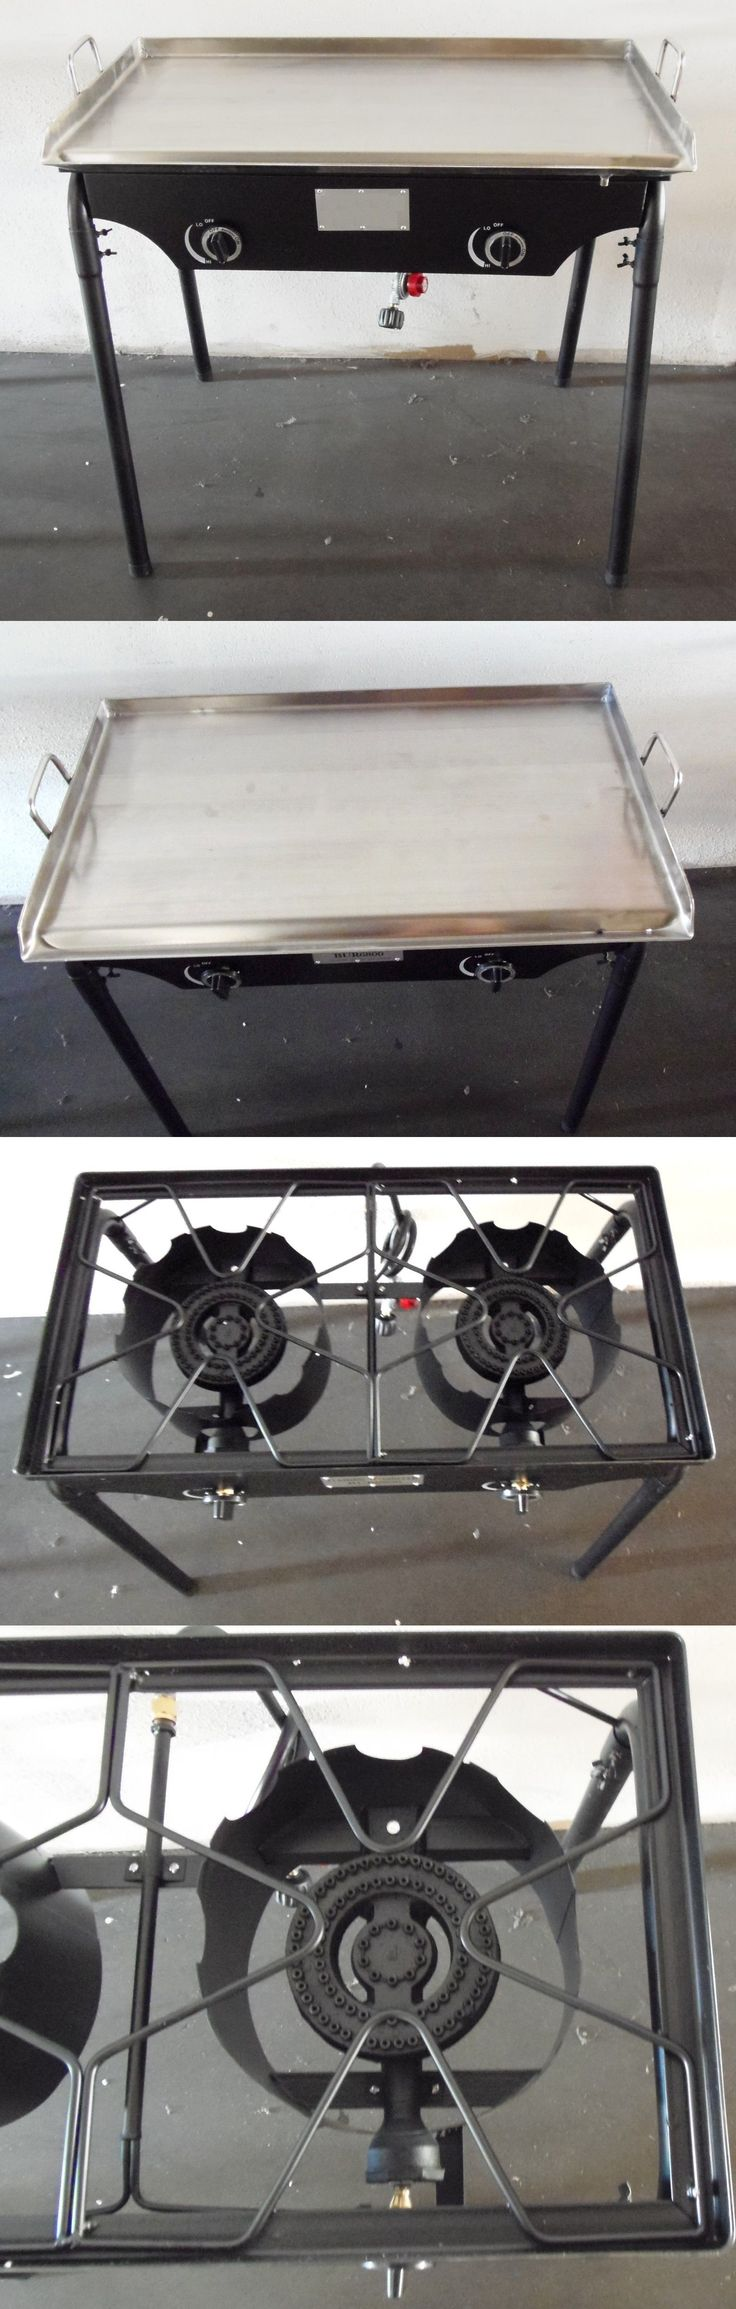 Grills and Griddles 20675: Heavy 32 X 17 Wide Stainless Steel Flat Top Griddle Grill Double Burner Stove -> BUY IT NOW ONLY: $195 on eBay!